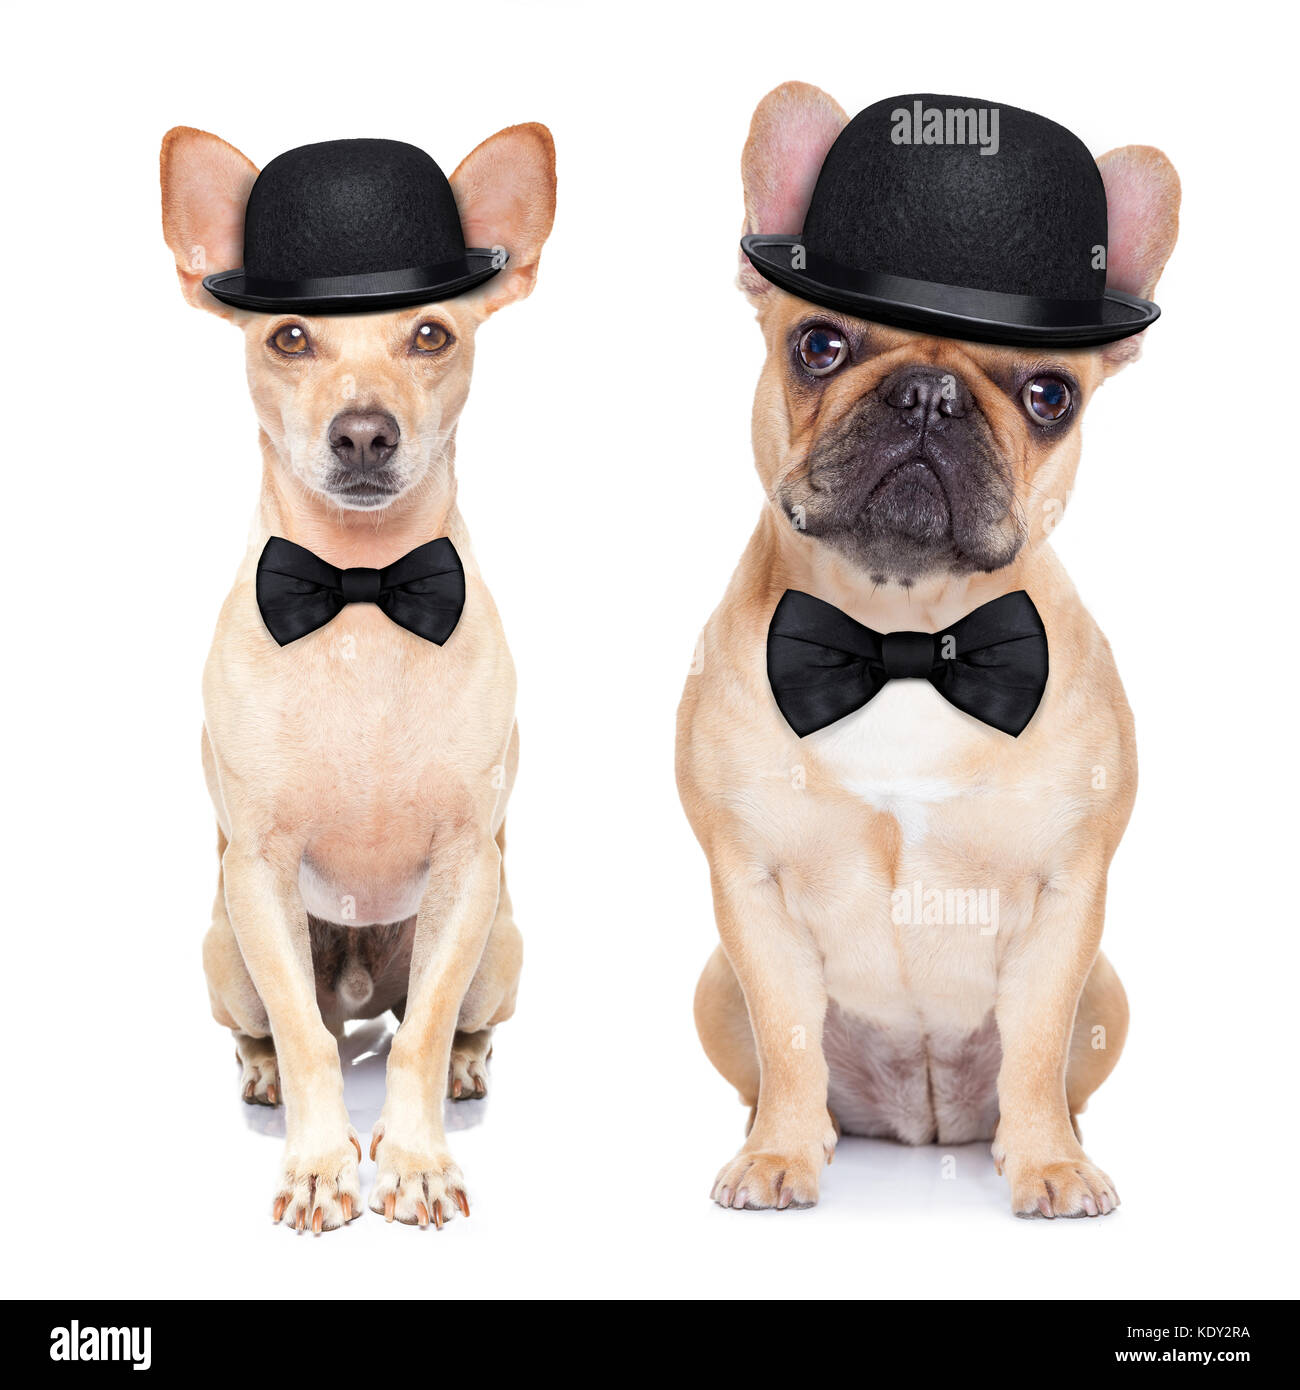 comedian classic couple of dogs ,wearing a bowler hat ,black tie and mustache, isolated on white background - Stock Image